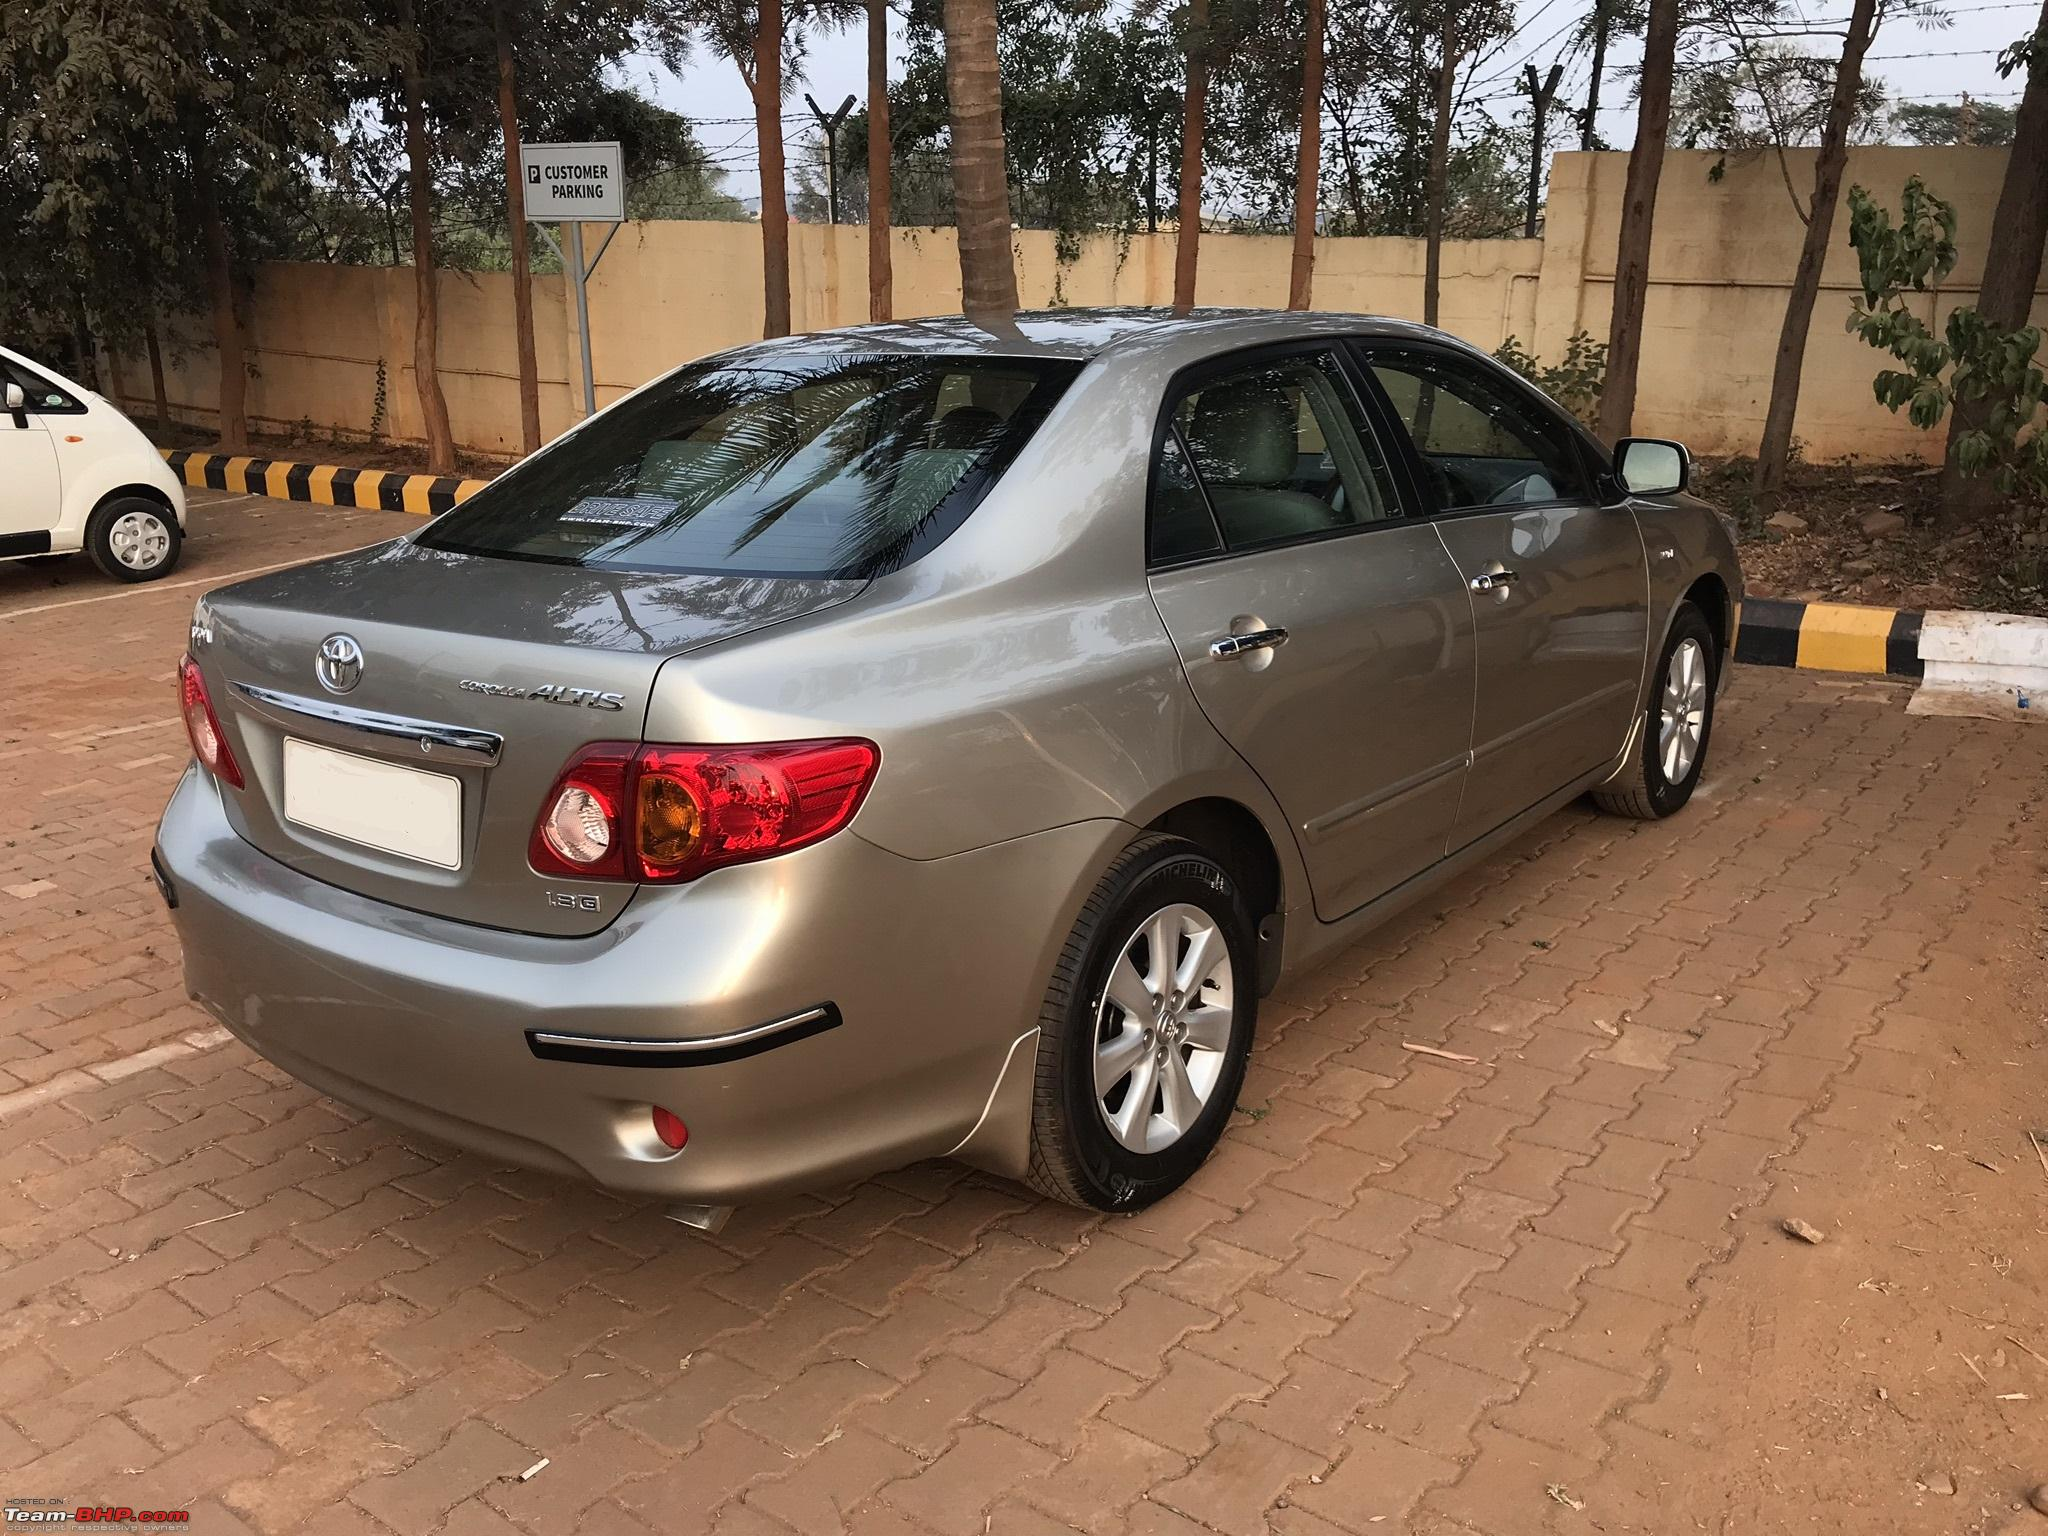 2009 toyota corolla altis 1 8 gl 74 000 kms 9th year ownership report page 21 team bhp. Black Bedroom Furniture Sets. Home Design Ideas